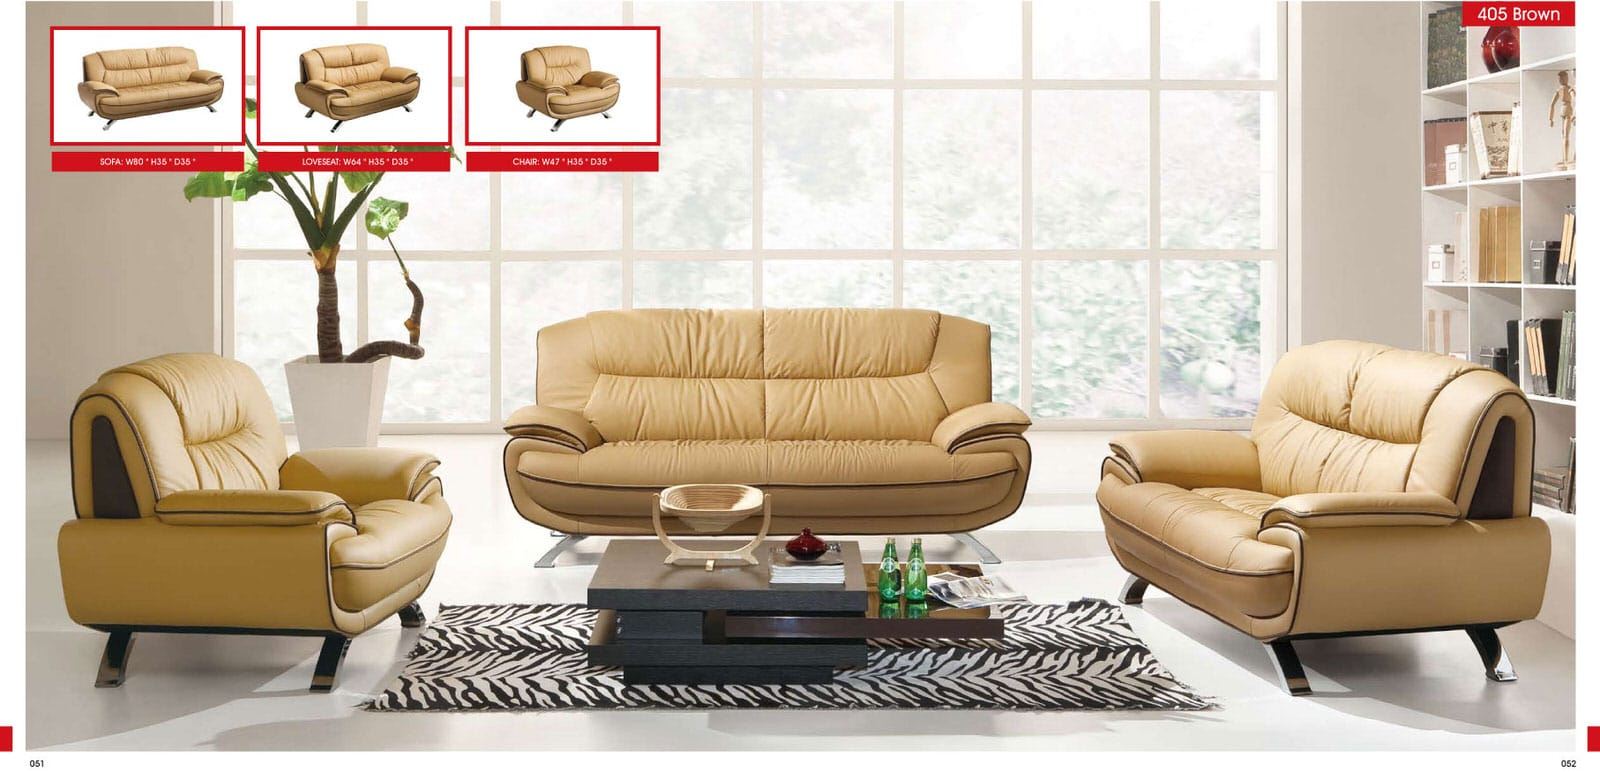 405 brown leather sofa set by esf for Apartment furniture